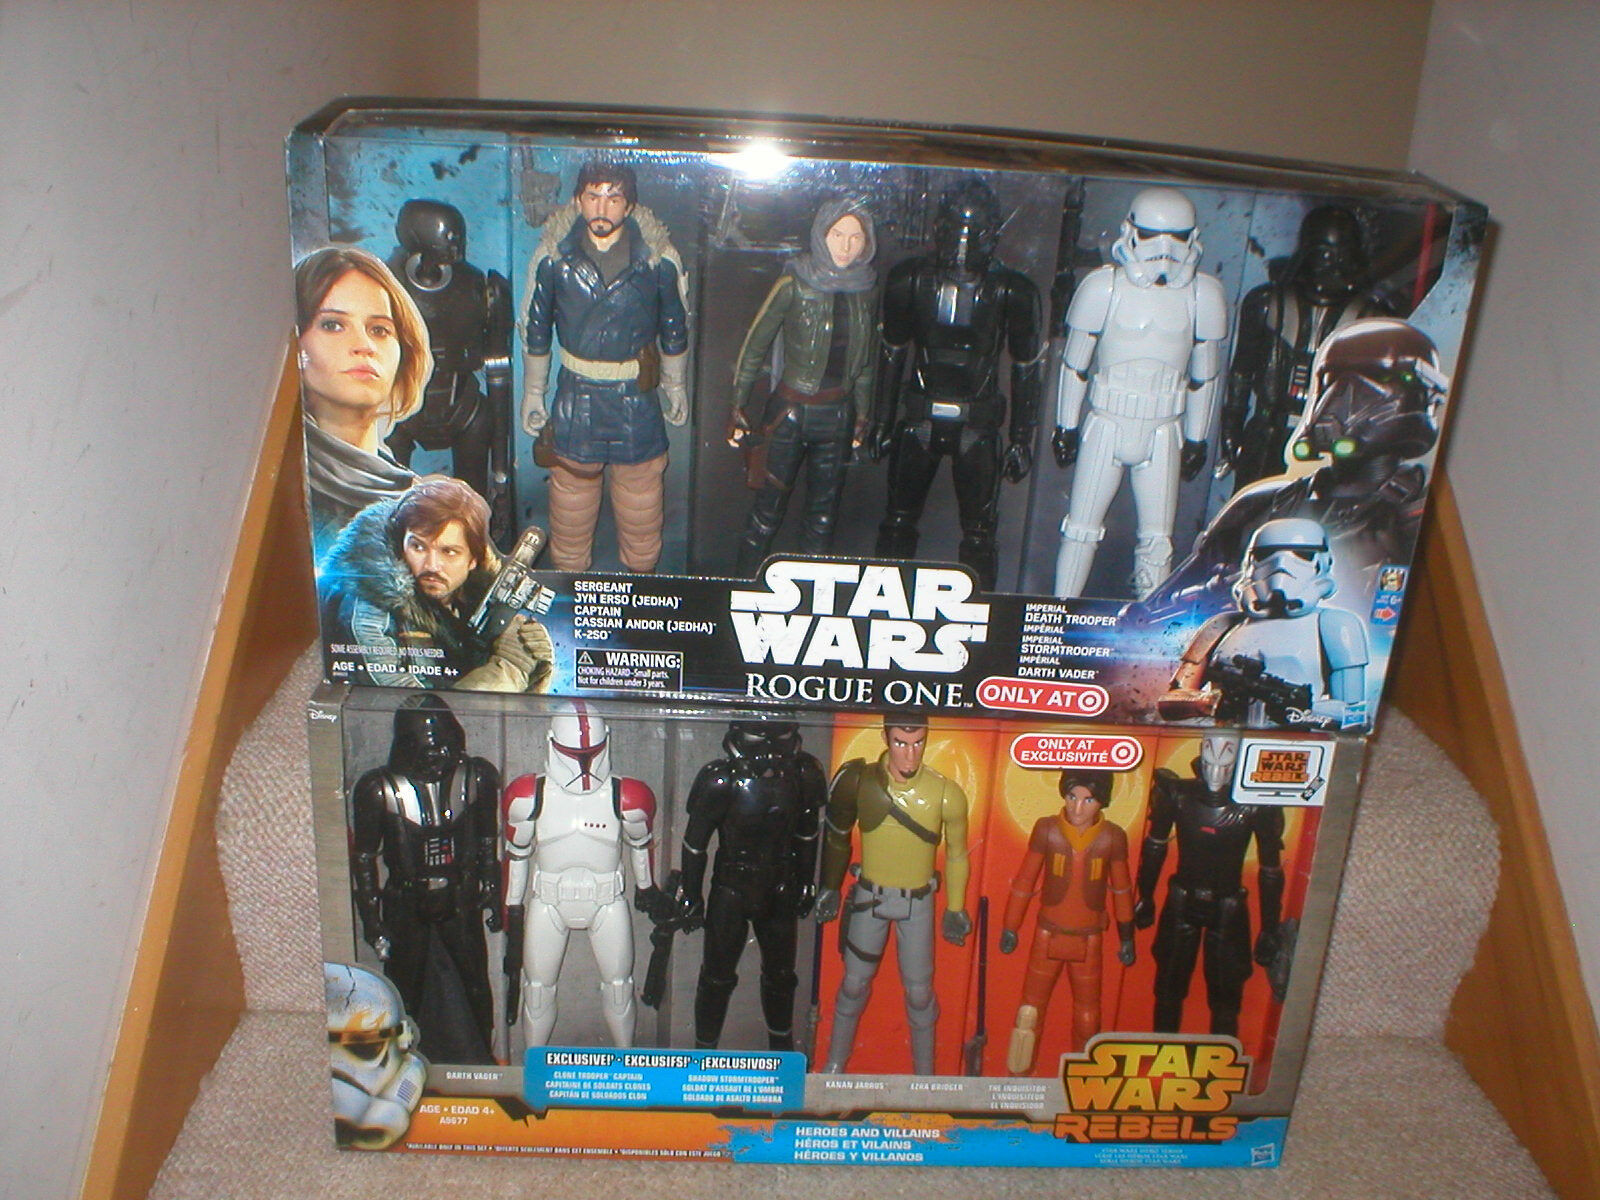 STAR WARS ROGUE ONE AND REBELS 12 INCH FIGURE SETS, 12 FIGURES IN ALL, NEVER OPE